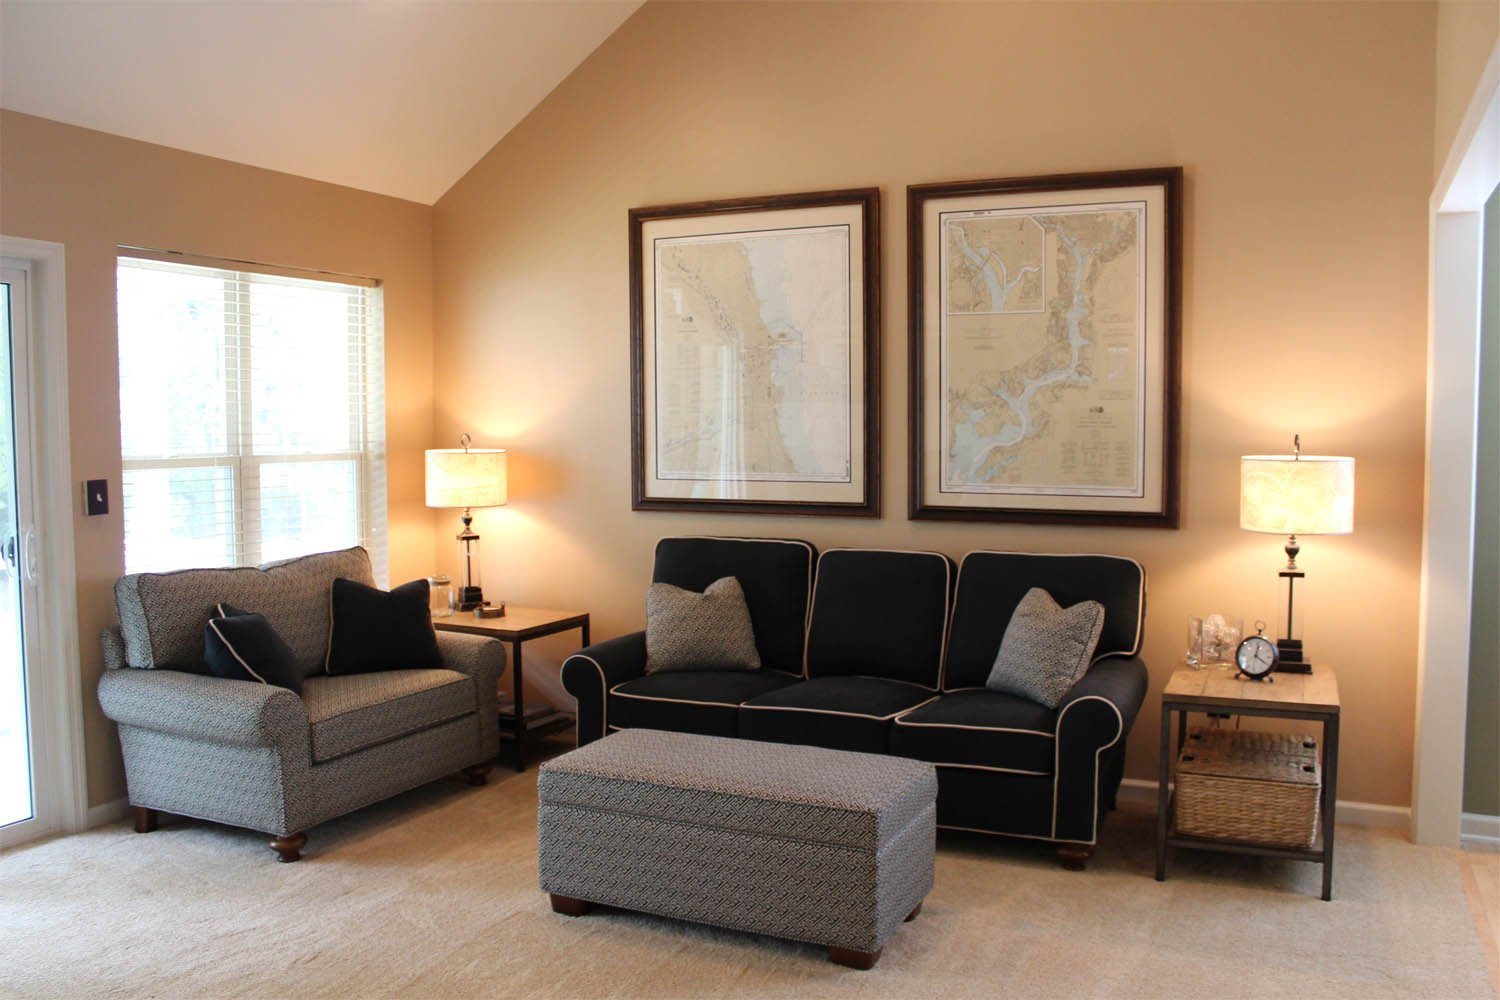 Small Living Roompaint Ideas Paint Ideas for Living Room with Narrow Space theydesign